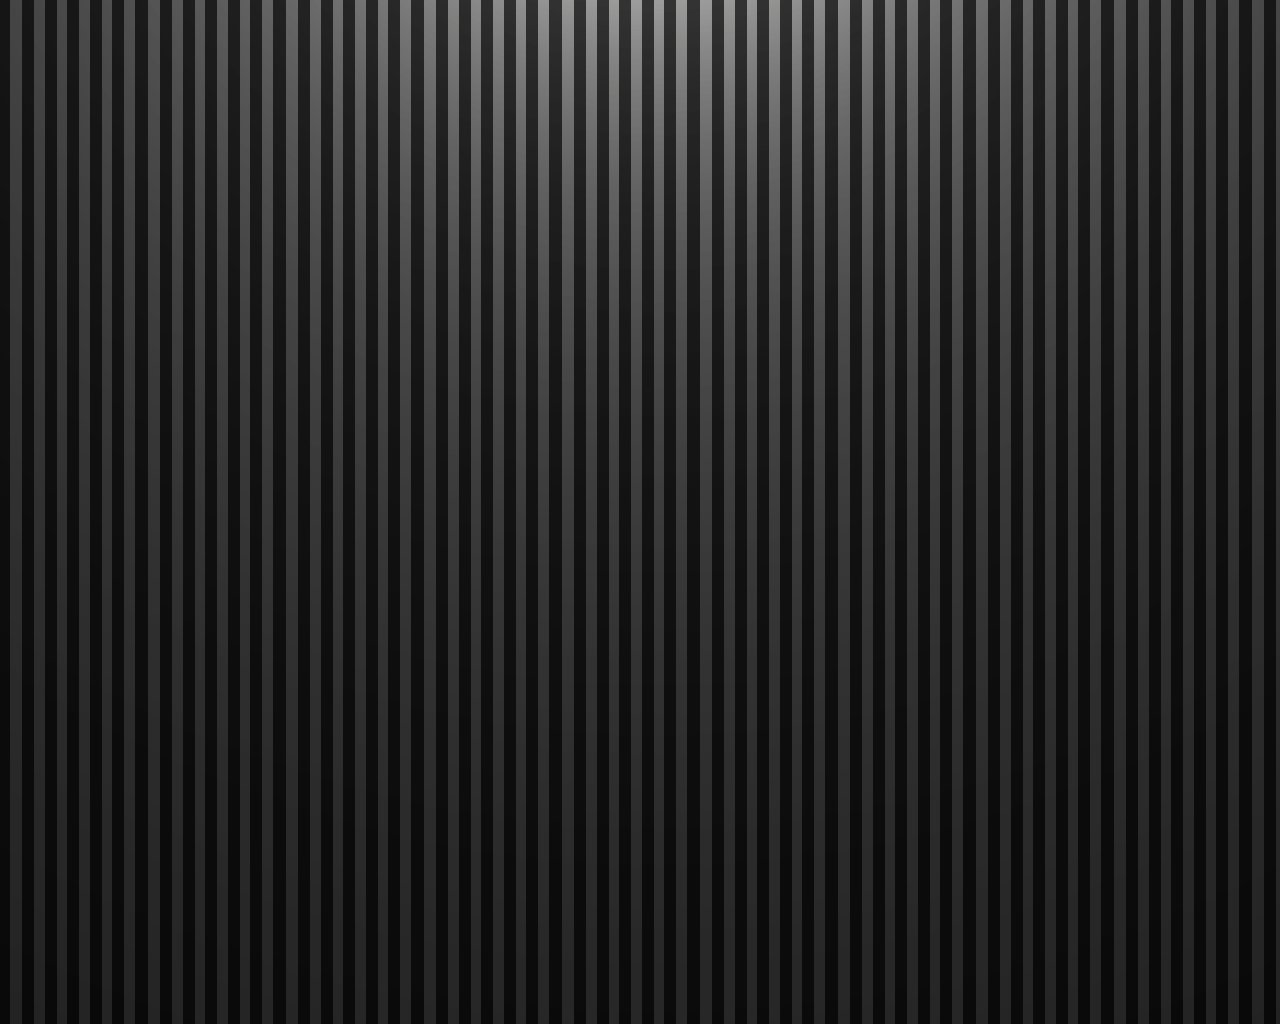 Black And White Stripes Wallpaper   Wallpapers High Definition 1280x1024